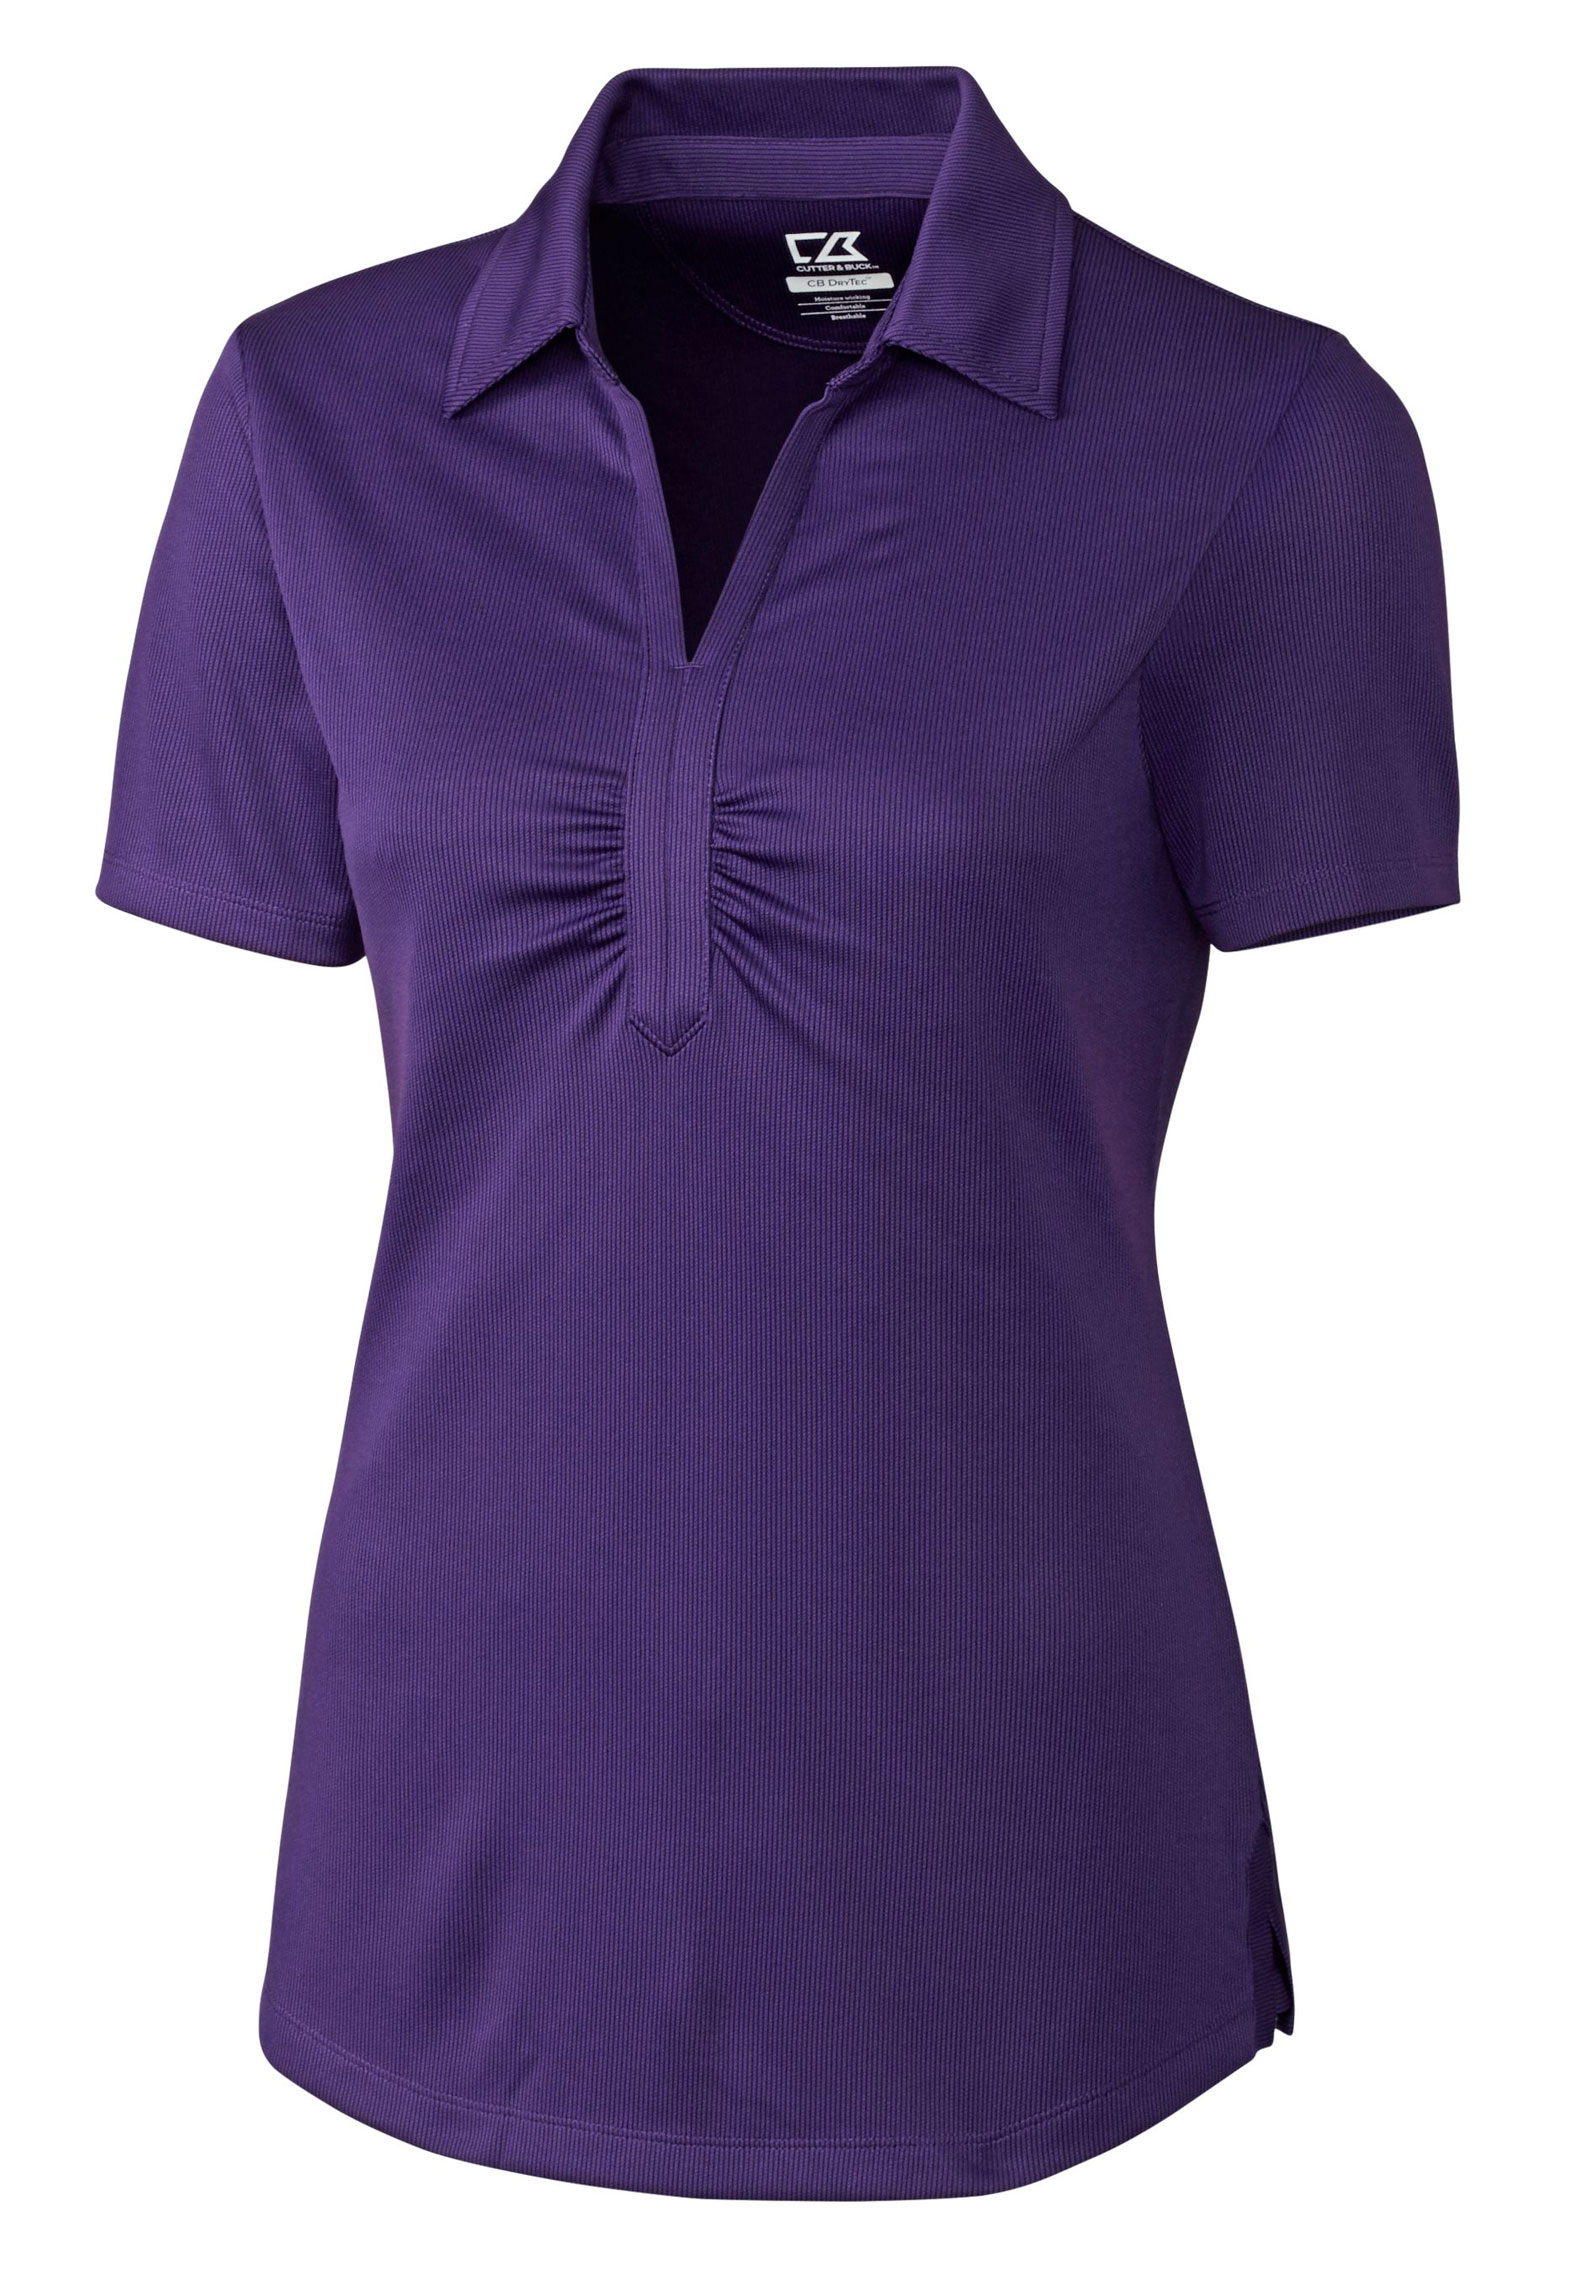 Ladies CB DryTec� Glendale Polo